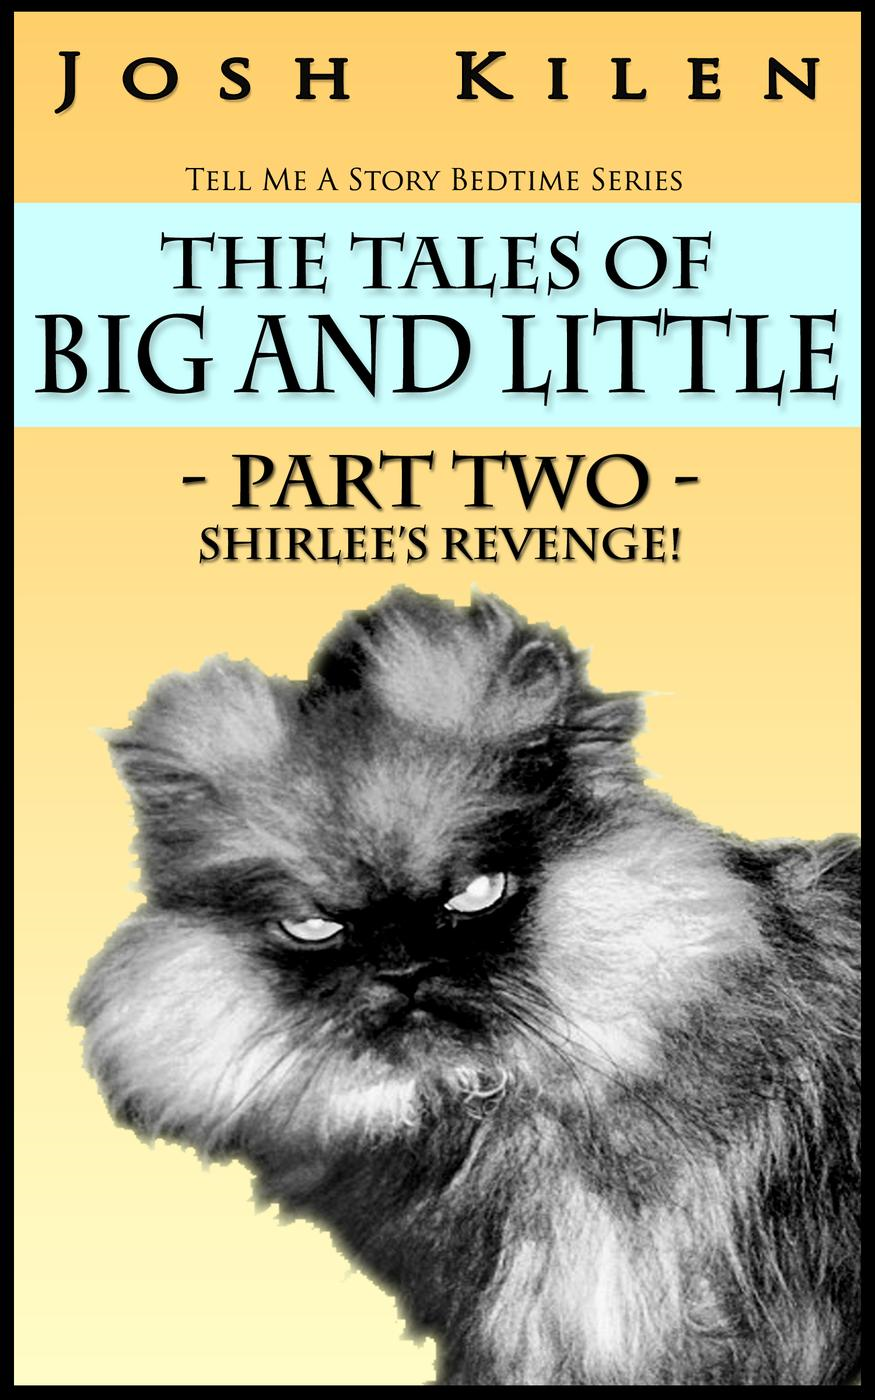 The Tales of Big and Little - Part Two: Shirlee's Revenge (Tell Me A Story Bedtime Stories for Kids)